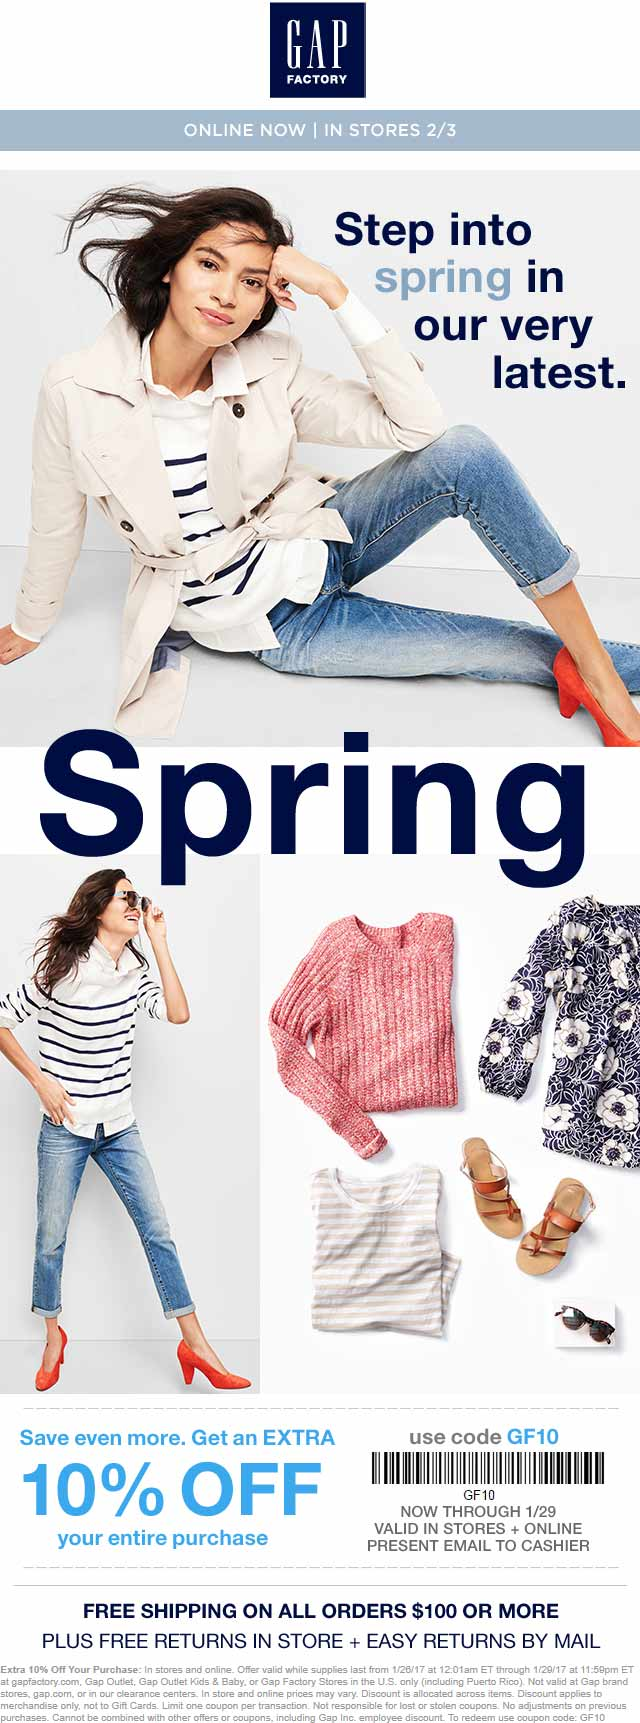 Gap Factory Coupon March 2019 Extra 10% off at Gap Factory, or online via promo code GF10